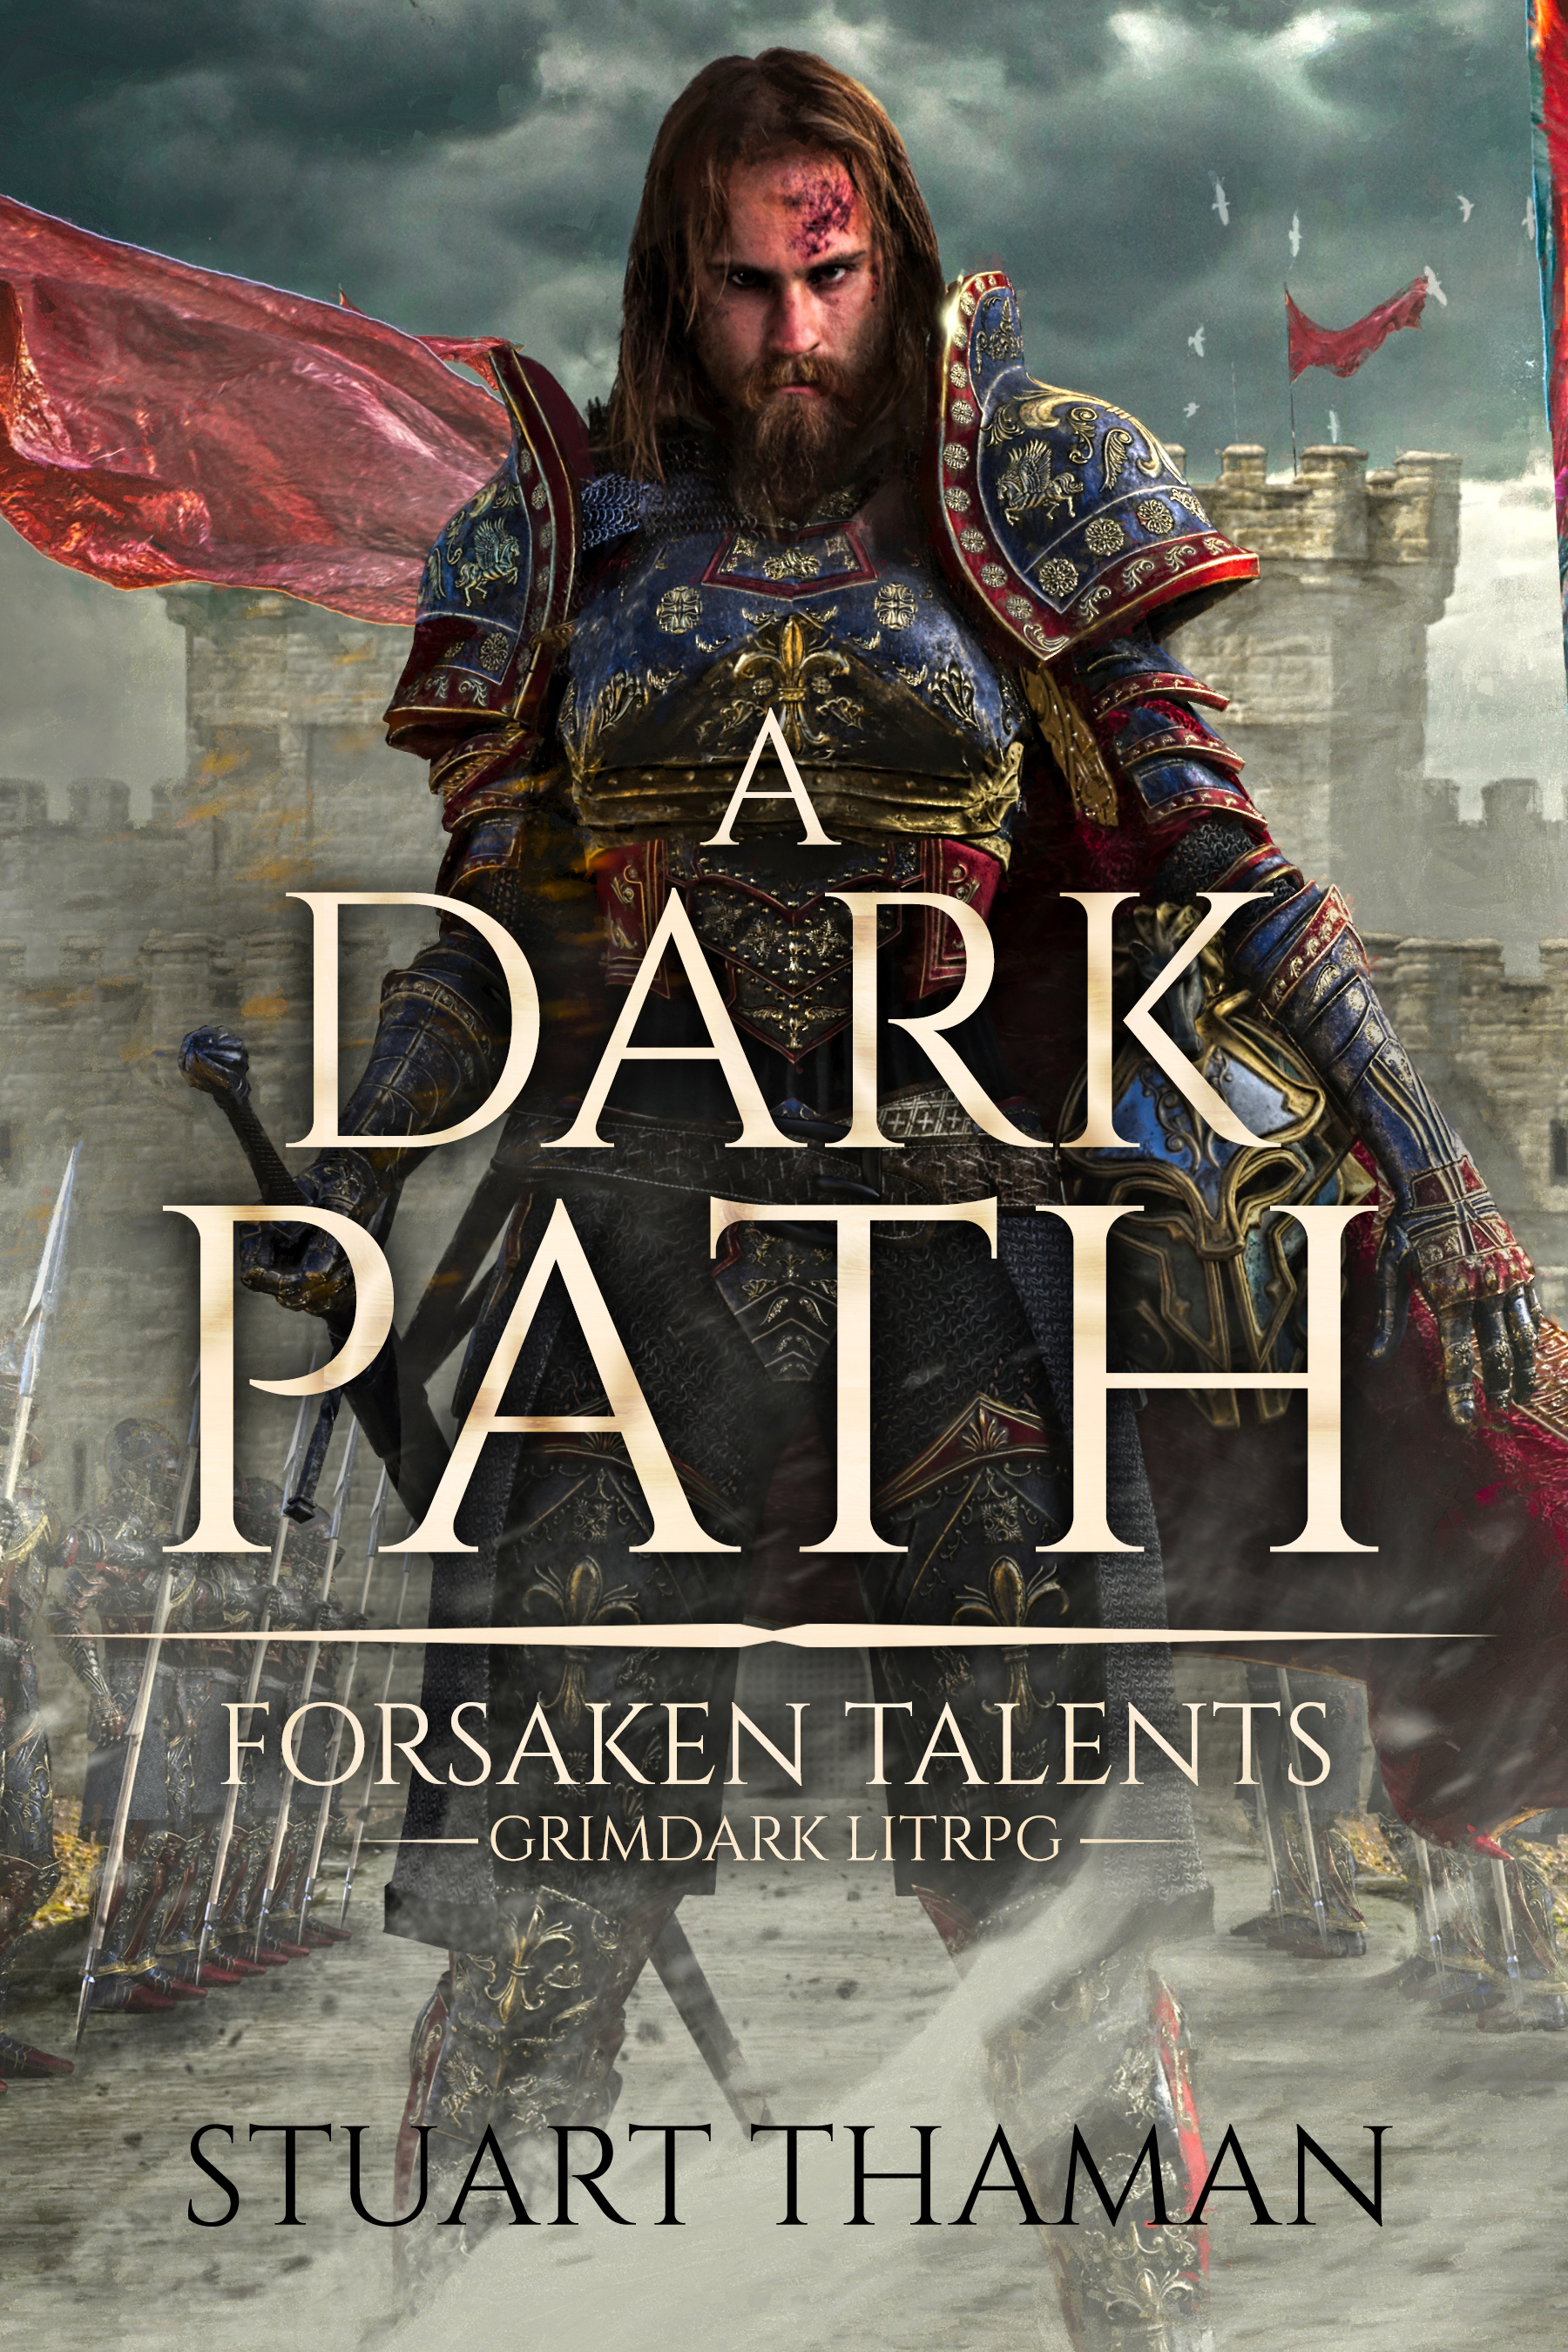 Forsaken Talents - A grimdark LitRPG with lots of dungeon building and town management. If you like playing games similar to Civilization, Starcraft, Warcraft, or any tower defense games, you'll love Forsaken Talents.The characters in Forsaken Talents voluntarily enter a game world with their own physical bodies, very unlike the standard VR tropes. Things take a rather immediate turn for the worst, and lots of horror elements are brought into the story. Throughout the main character's transformation, he also becomes extremely evil.